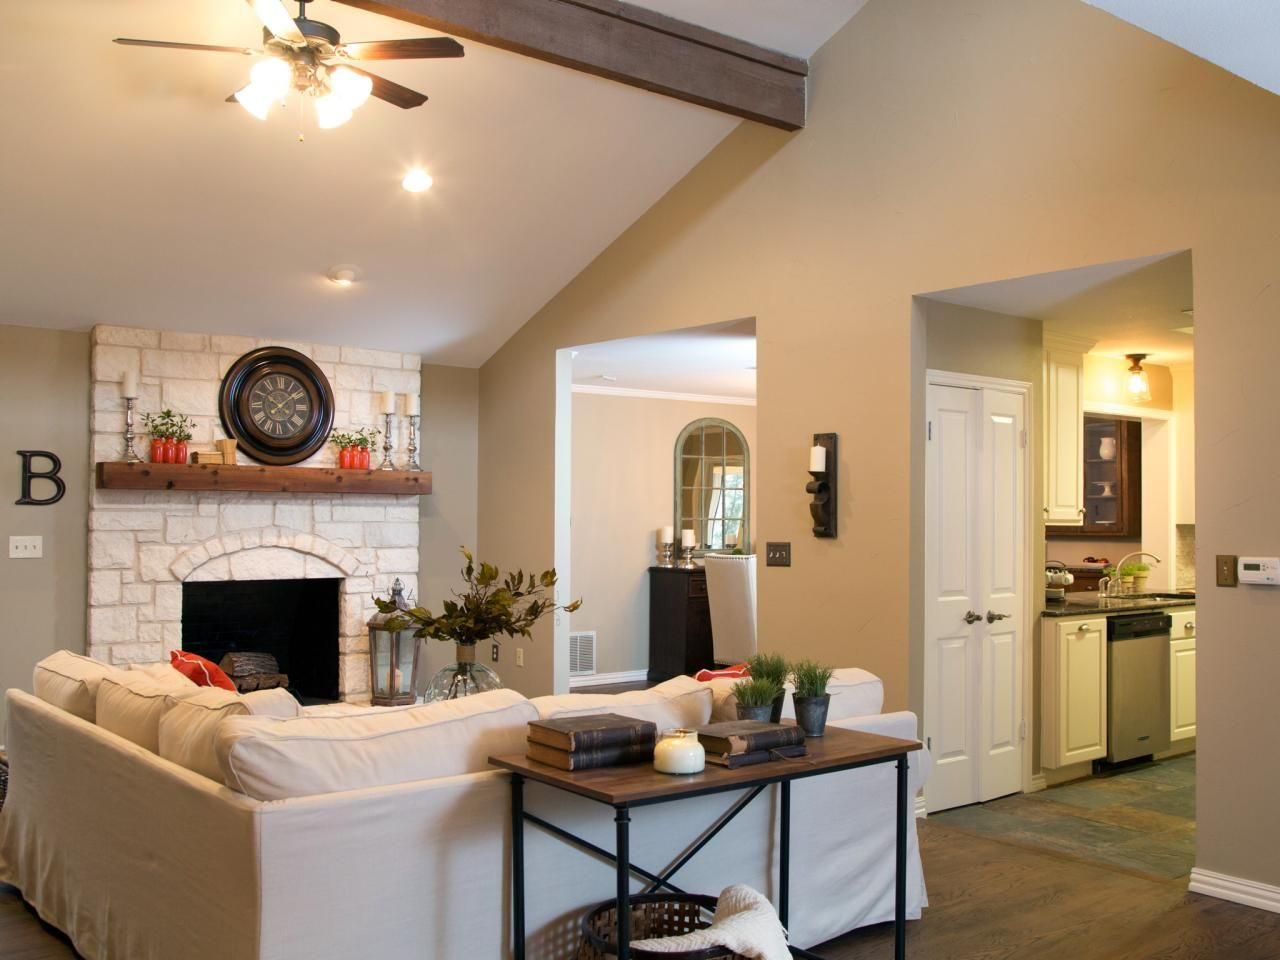 Photos hgtv 39 s fixer upper with chip and joanna gaines - Joanna gaines interior paint colors ...